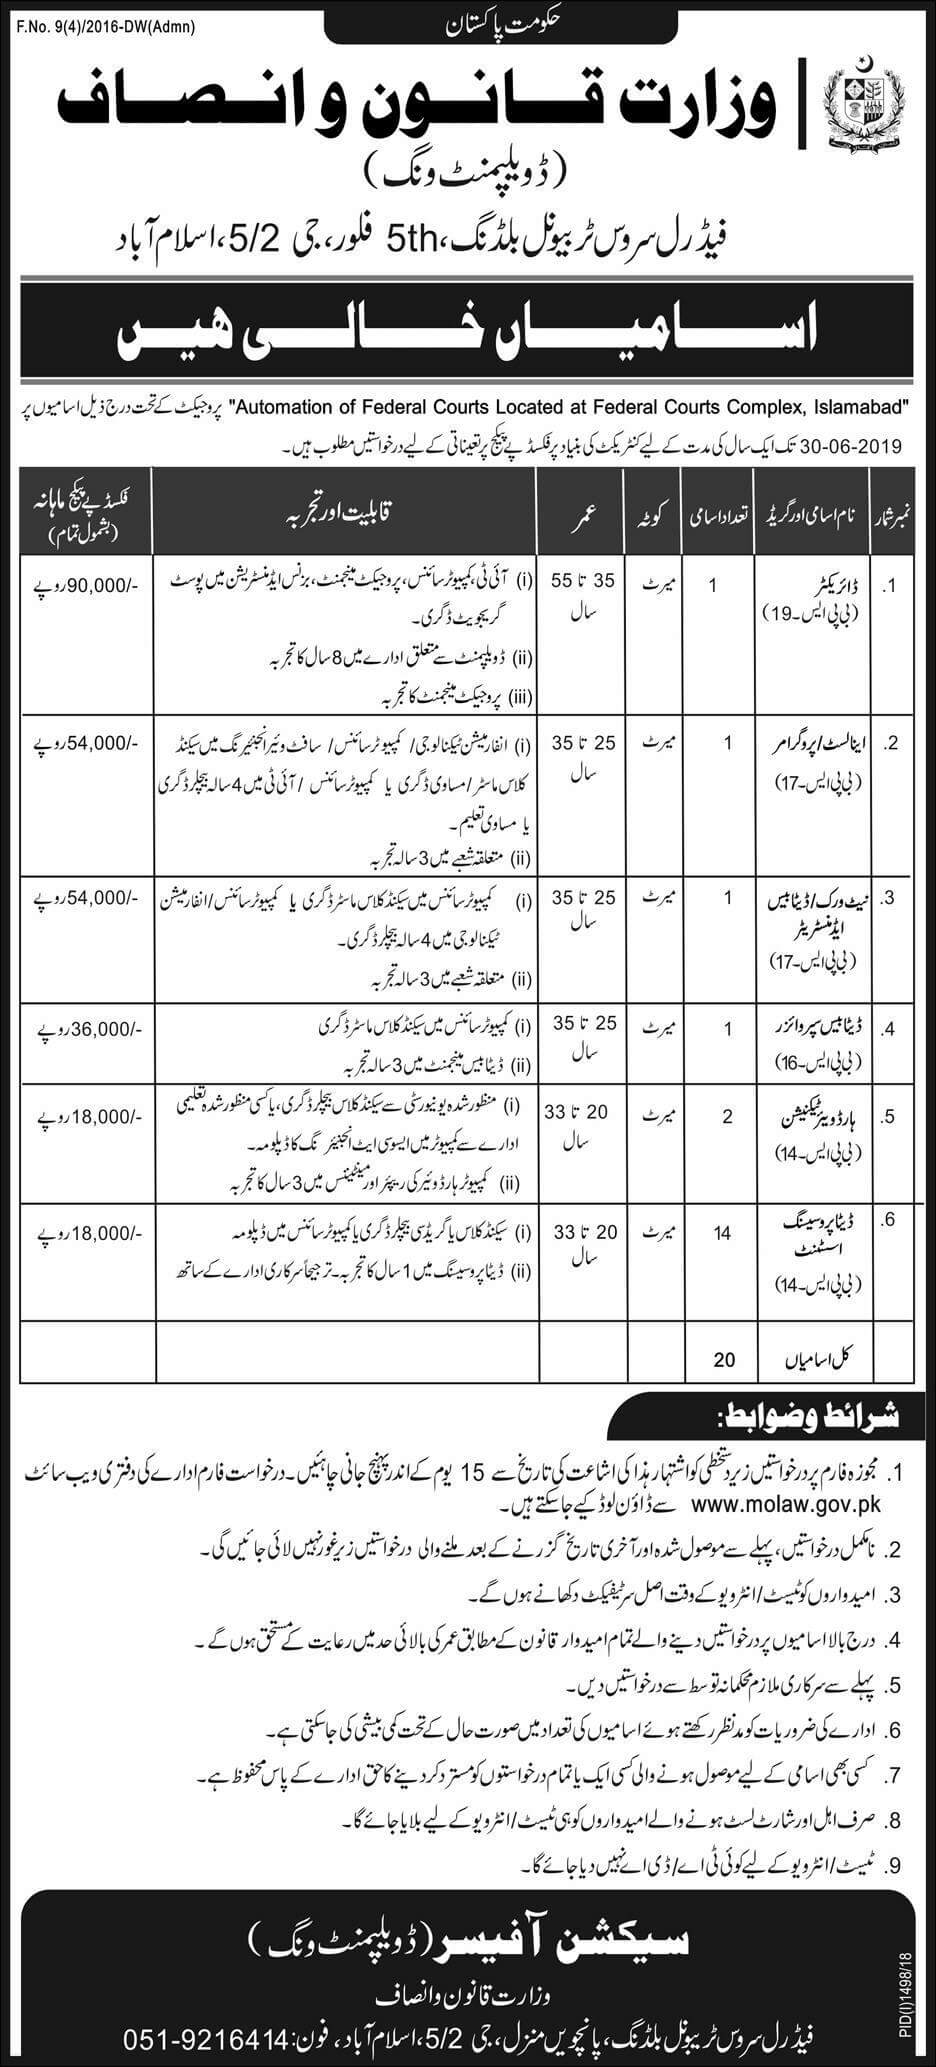 Molaw- Ministry of Law and Justice Latest Jobs 2018 Government Jobs-thumbnail